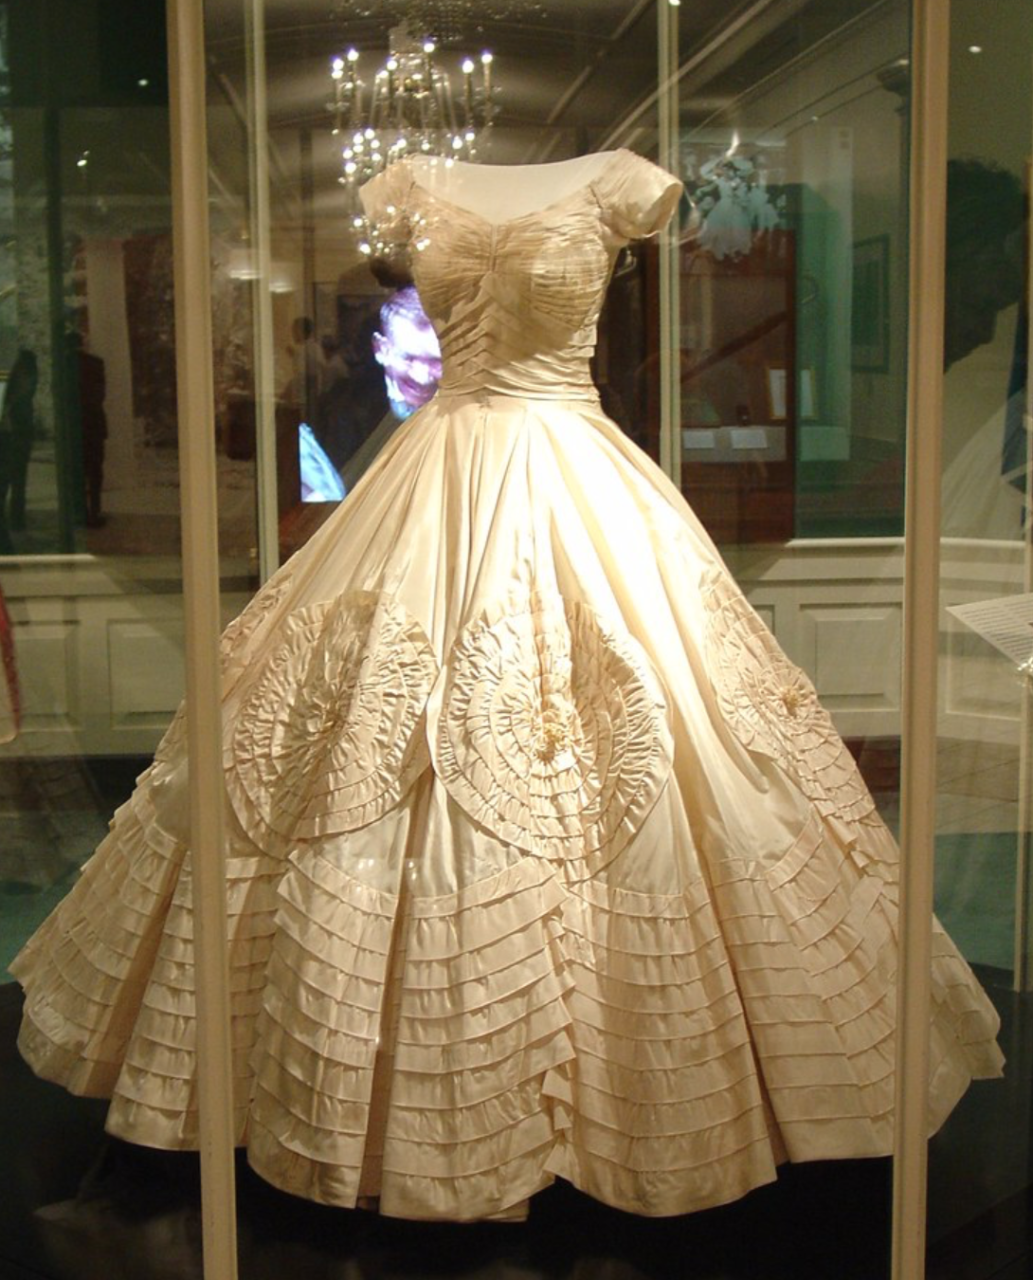 Jacqueline Kennedy's wedding dress on display in 2003